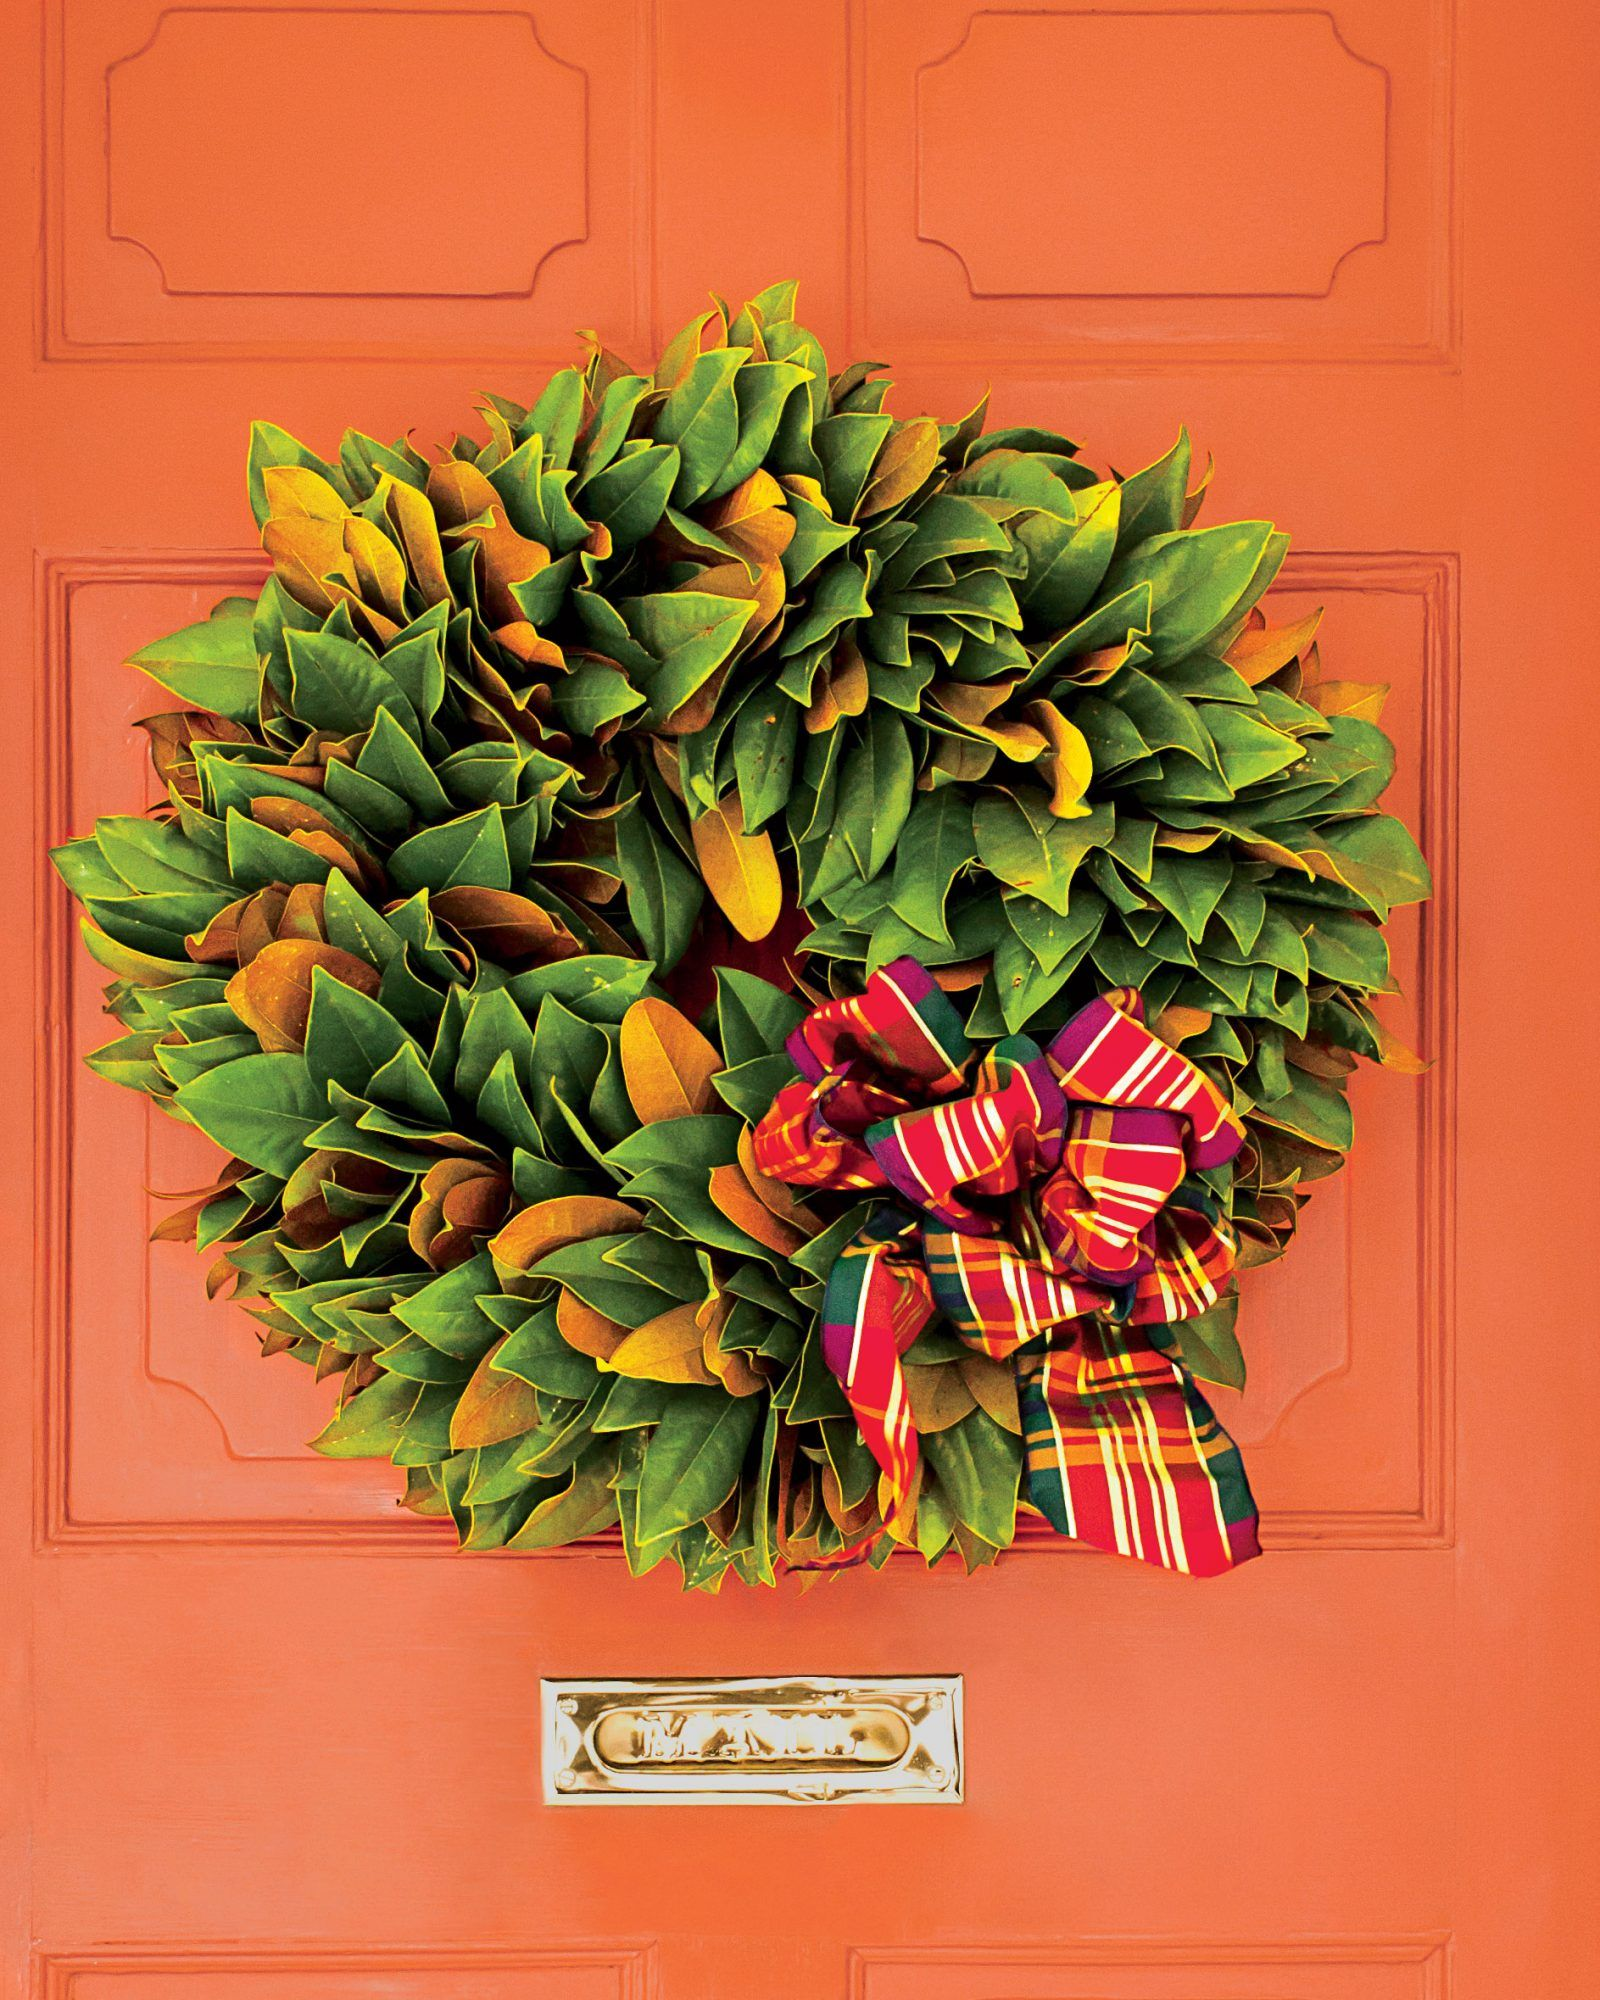 58 Christmas Wreath Ideas for Windows, Doors, and More